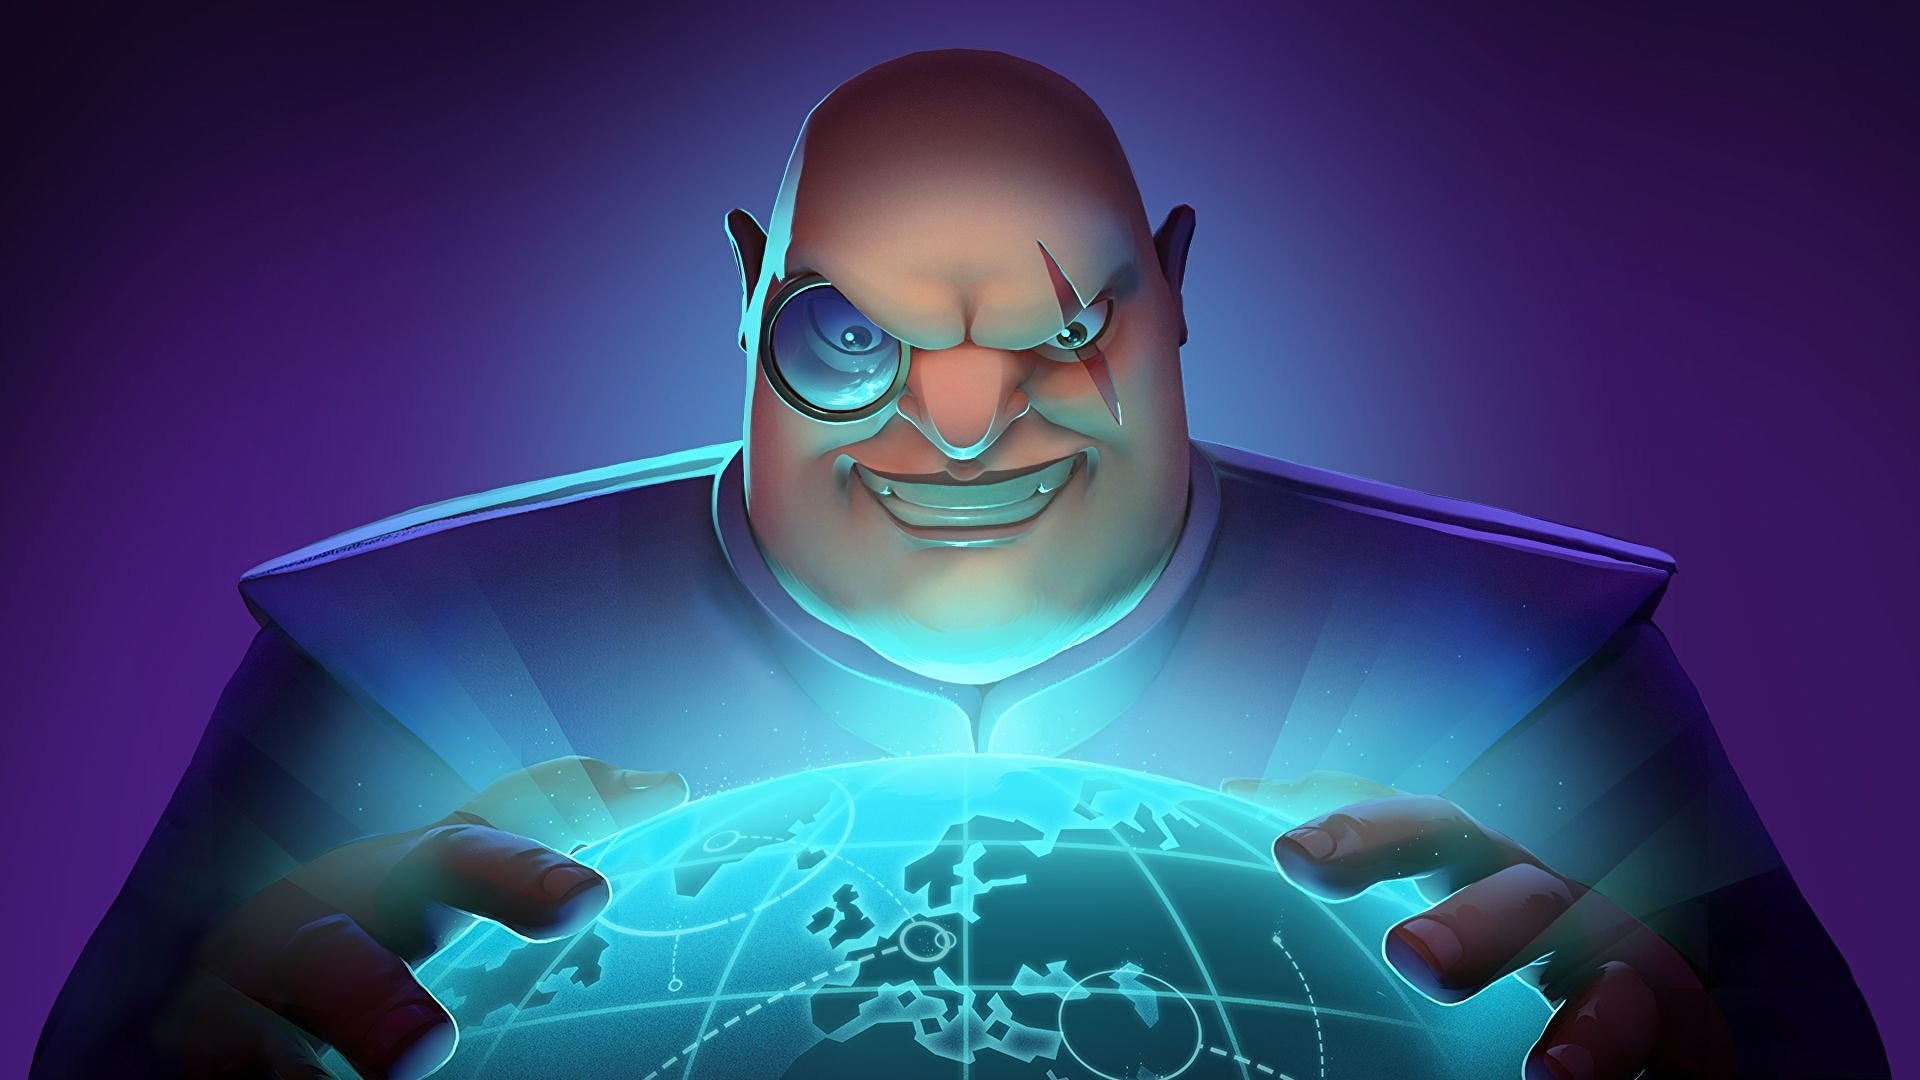 Evil Genius 2: World Domination plots a March 30th release date